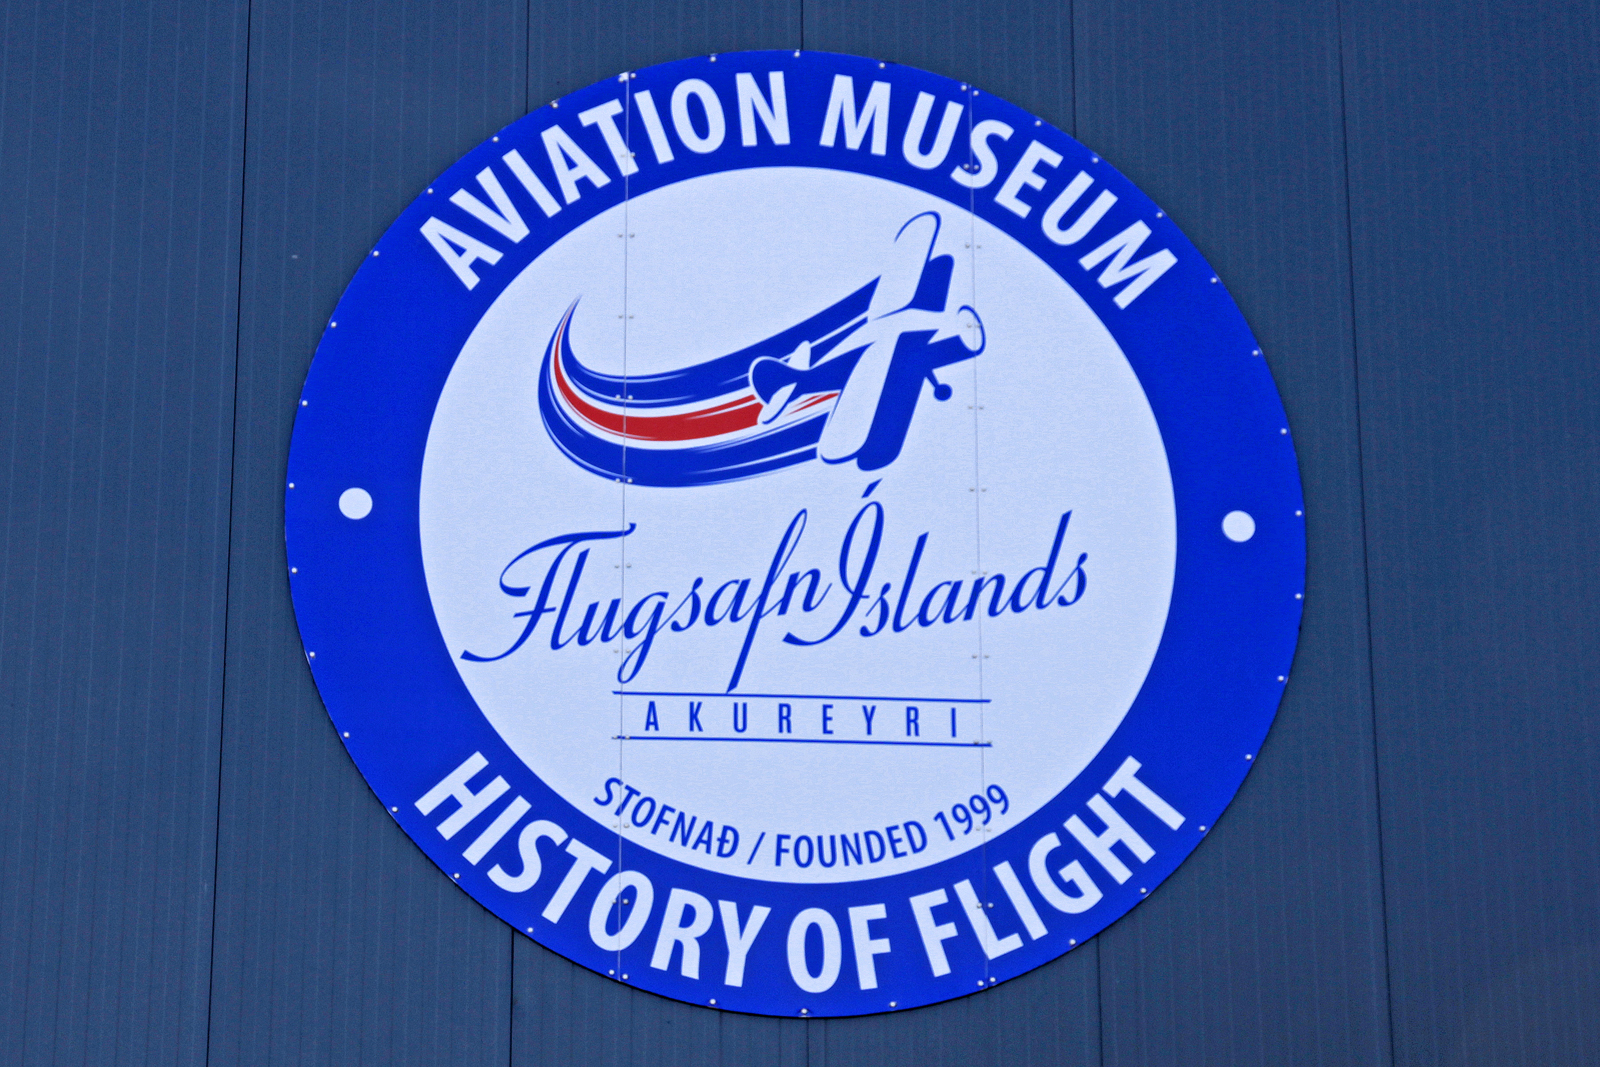 Logo des Flugsafn Islands - Aviation Museum Akureyri, AEY, 14. August 2020